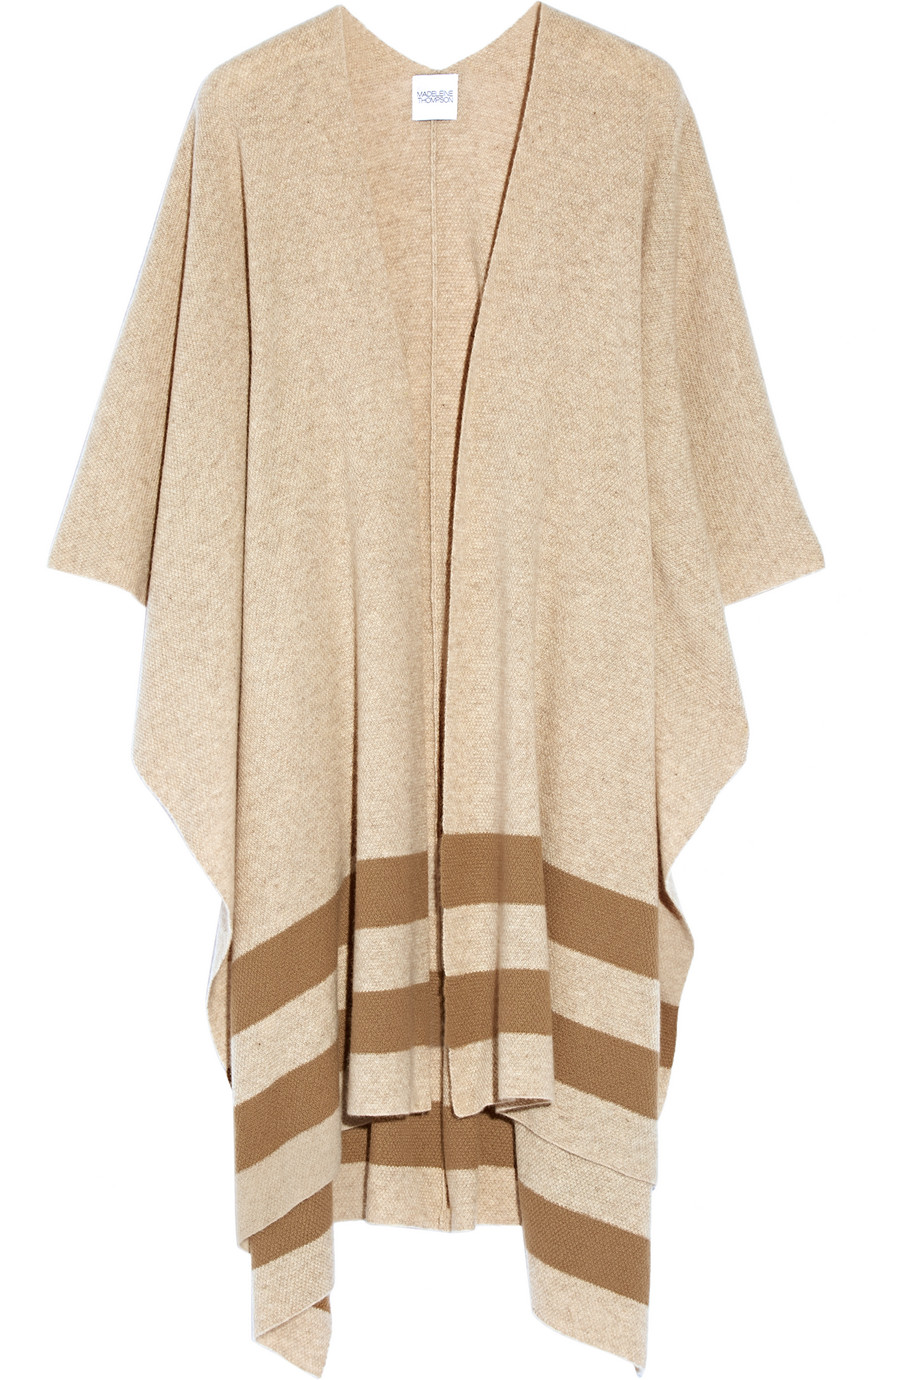 Towton Striped Cashmere Wrap, Madeleine Thompson, Camel, Women's